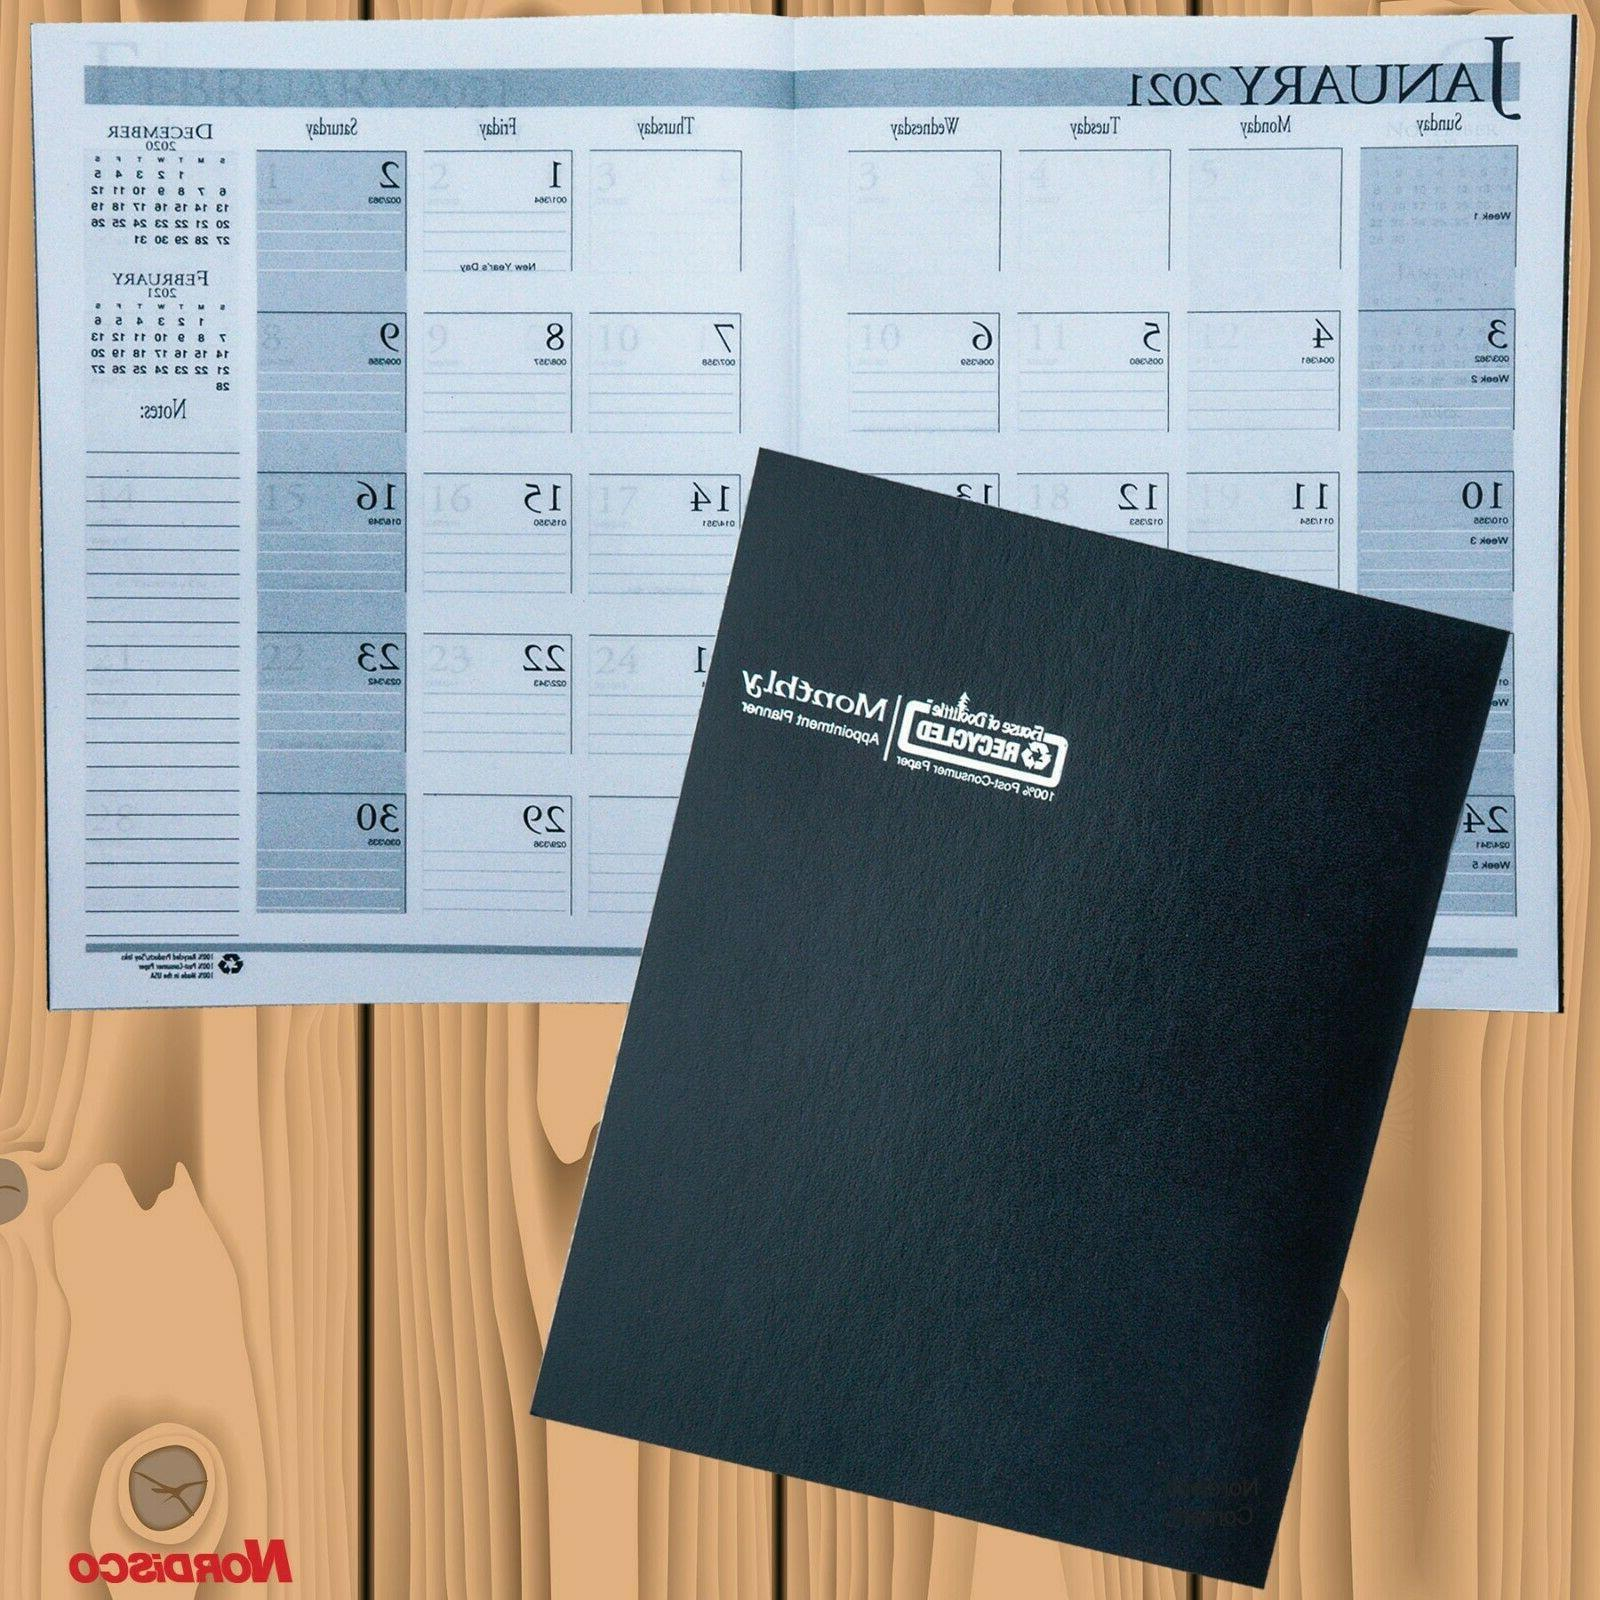 2021 260-02 of Planner, 8-1/2